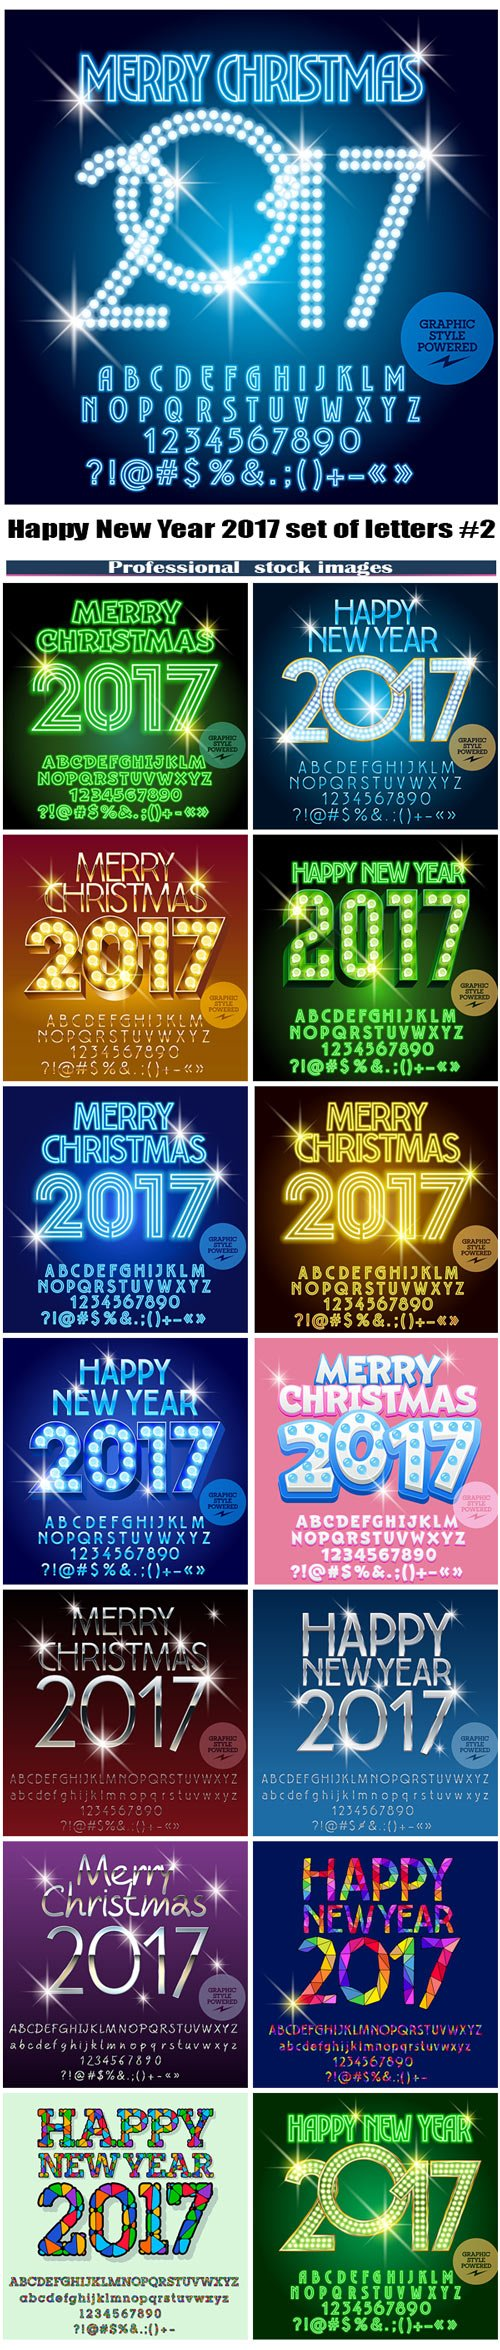 Happy New Year 2017 greeting card with set of letters, symbols and numbers #2